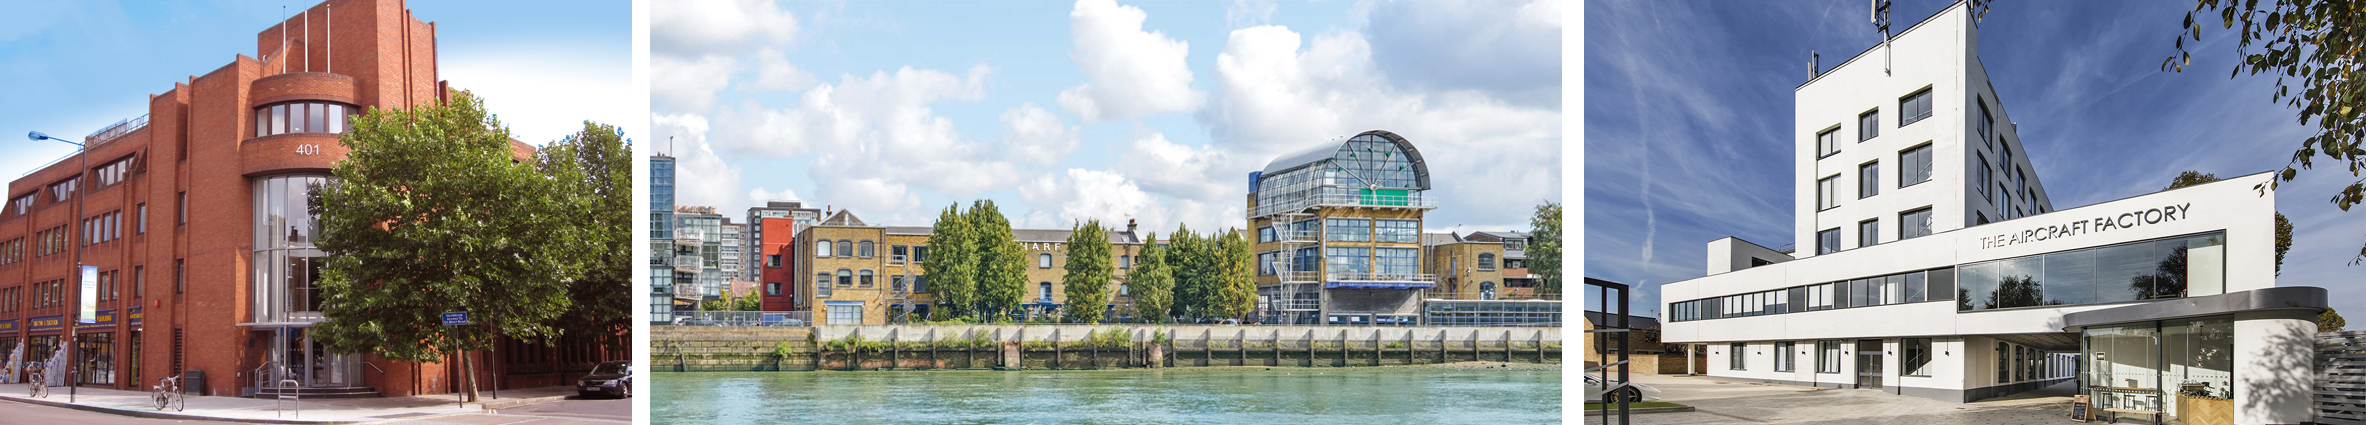 Thames-Wharf-Studios-The-Aircraft-Factory-401-King-Street-Commercial Property West London